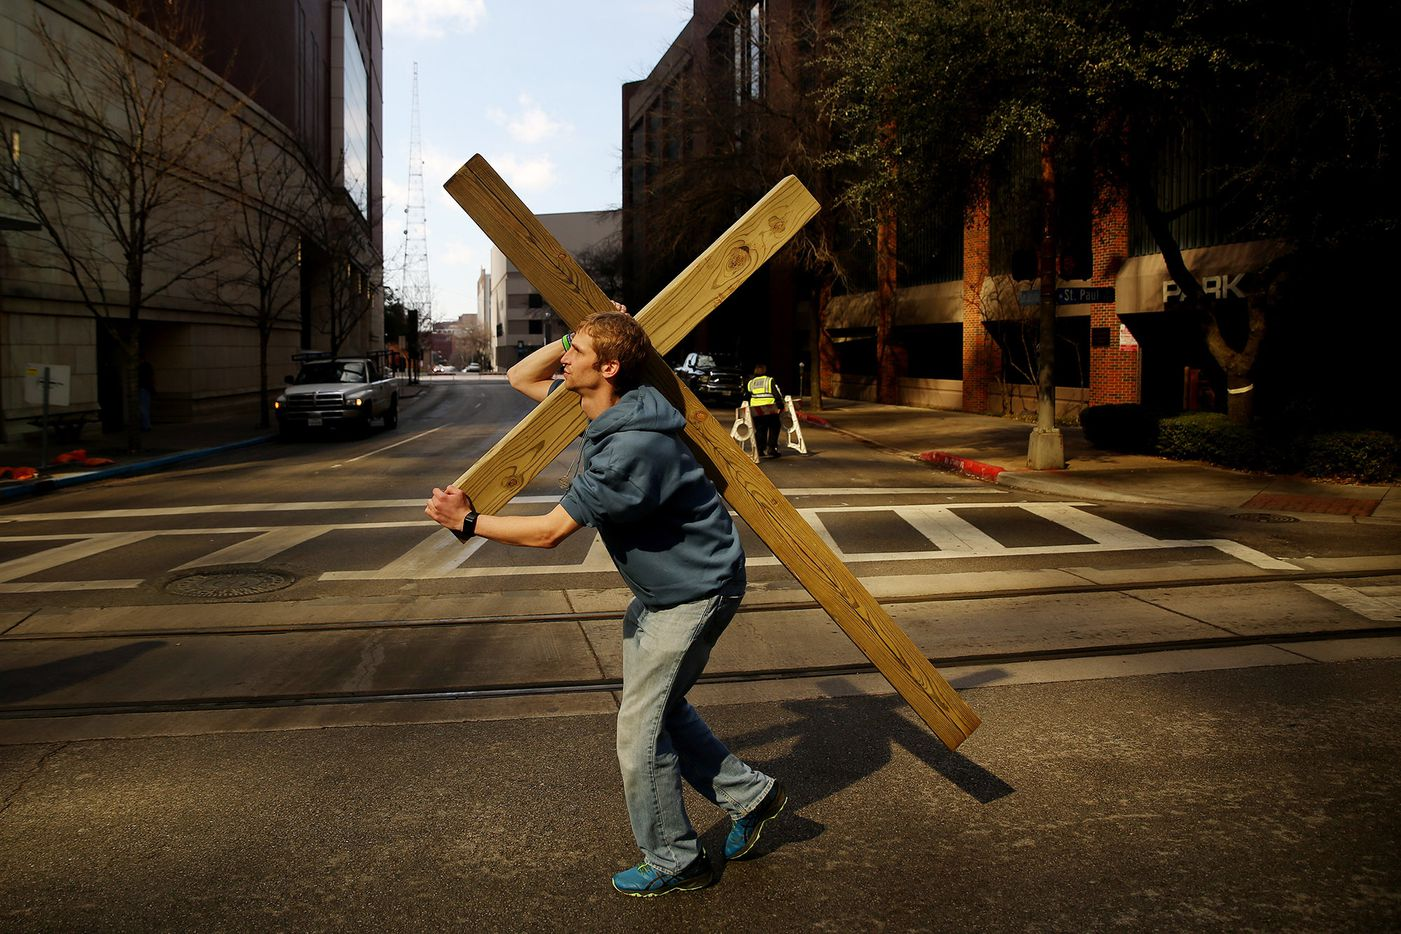 Jacob Niemeier, of Richardson, Texas, carries a cross during the North Texas March for Life in downtown Dallas Saturday January 20, 2018.